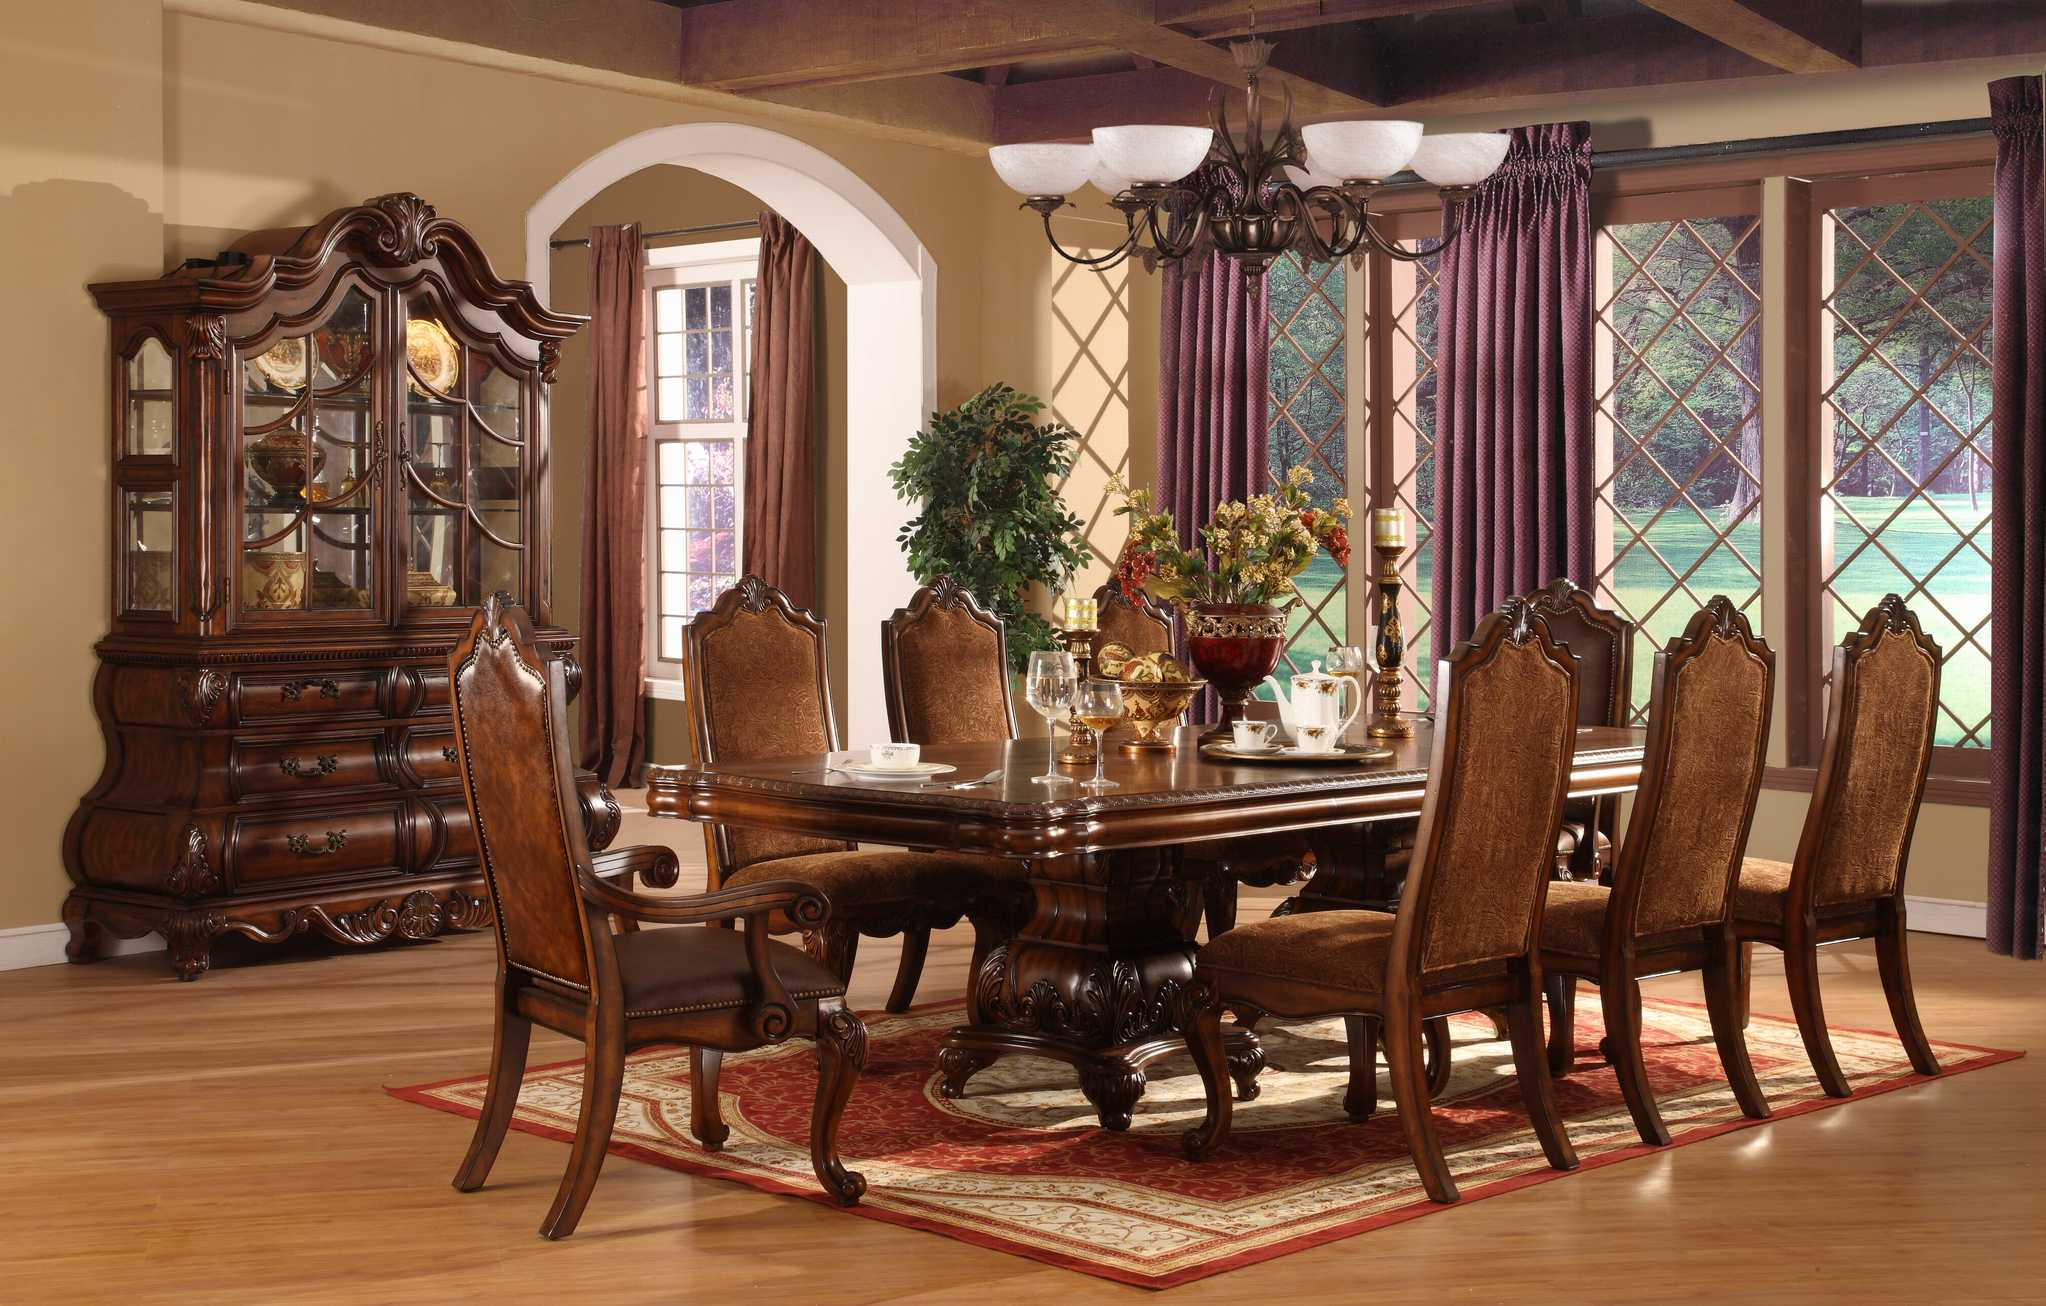 Formal dining room designs - Elegant Formal Dining Room Sets Wooden Bams Ceiling Laminate Floor